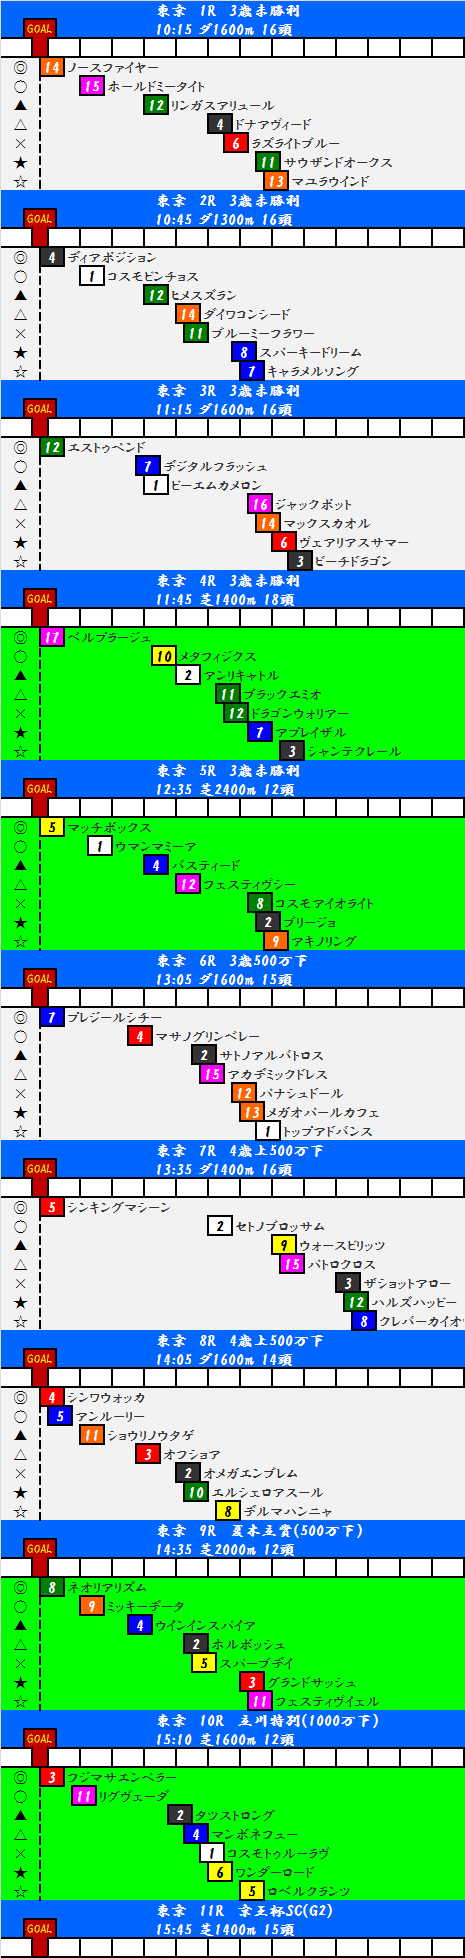 201405171.png